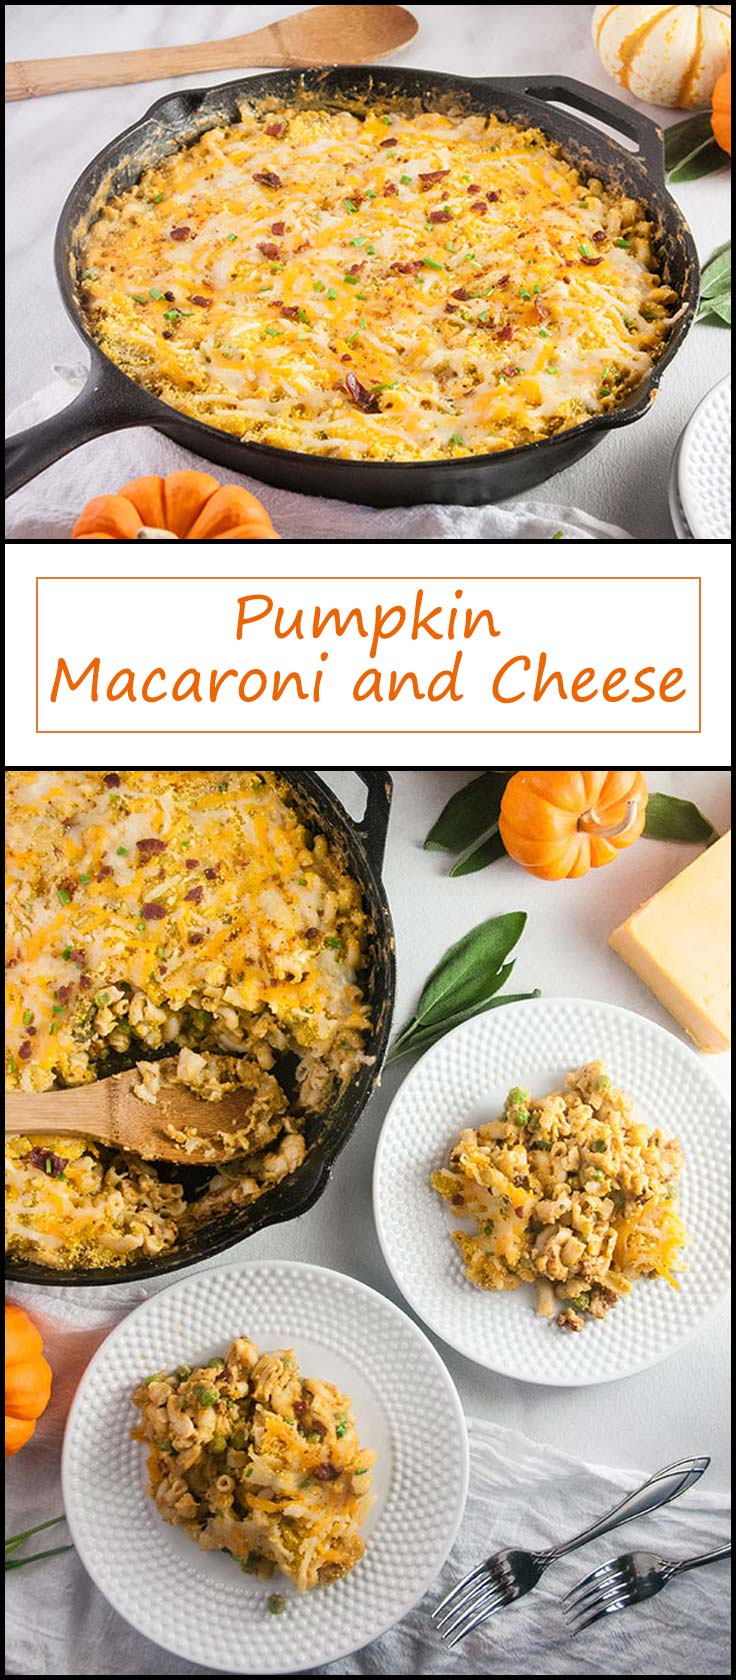 Pumpkin Macaroni and Cheese with Pancetta and Peas from www.seasonedsprinkles.com